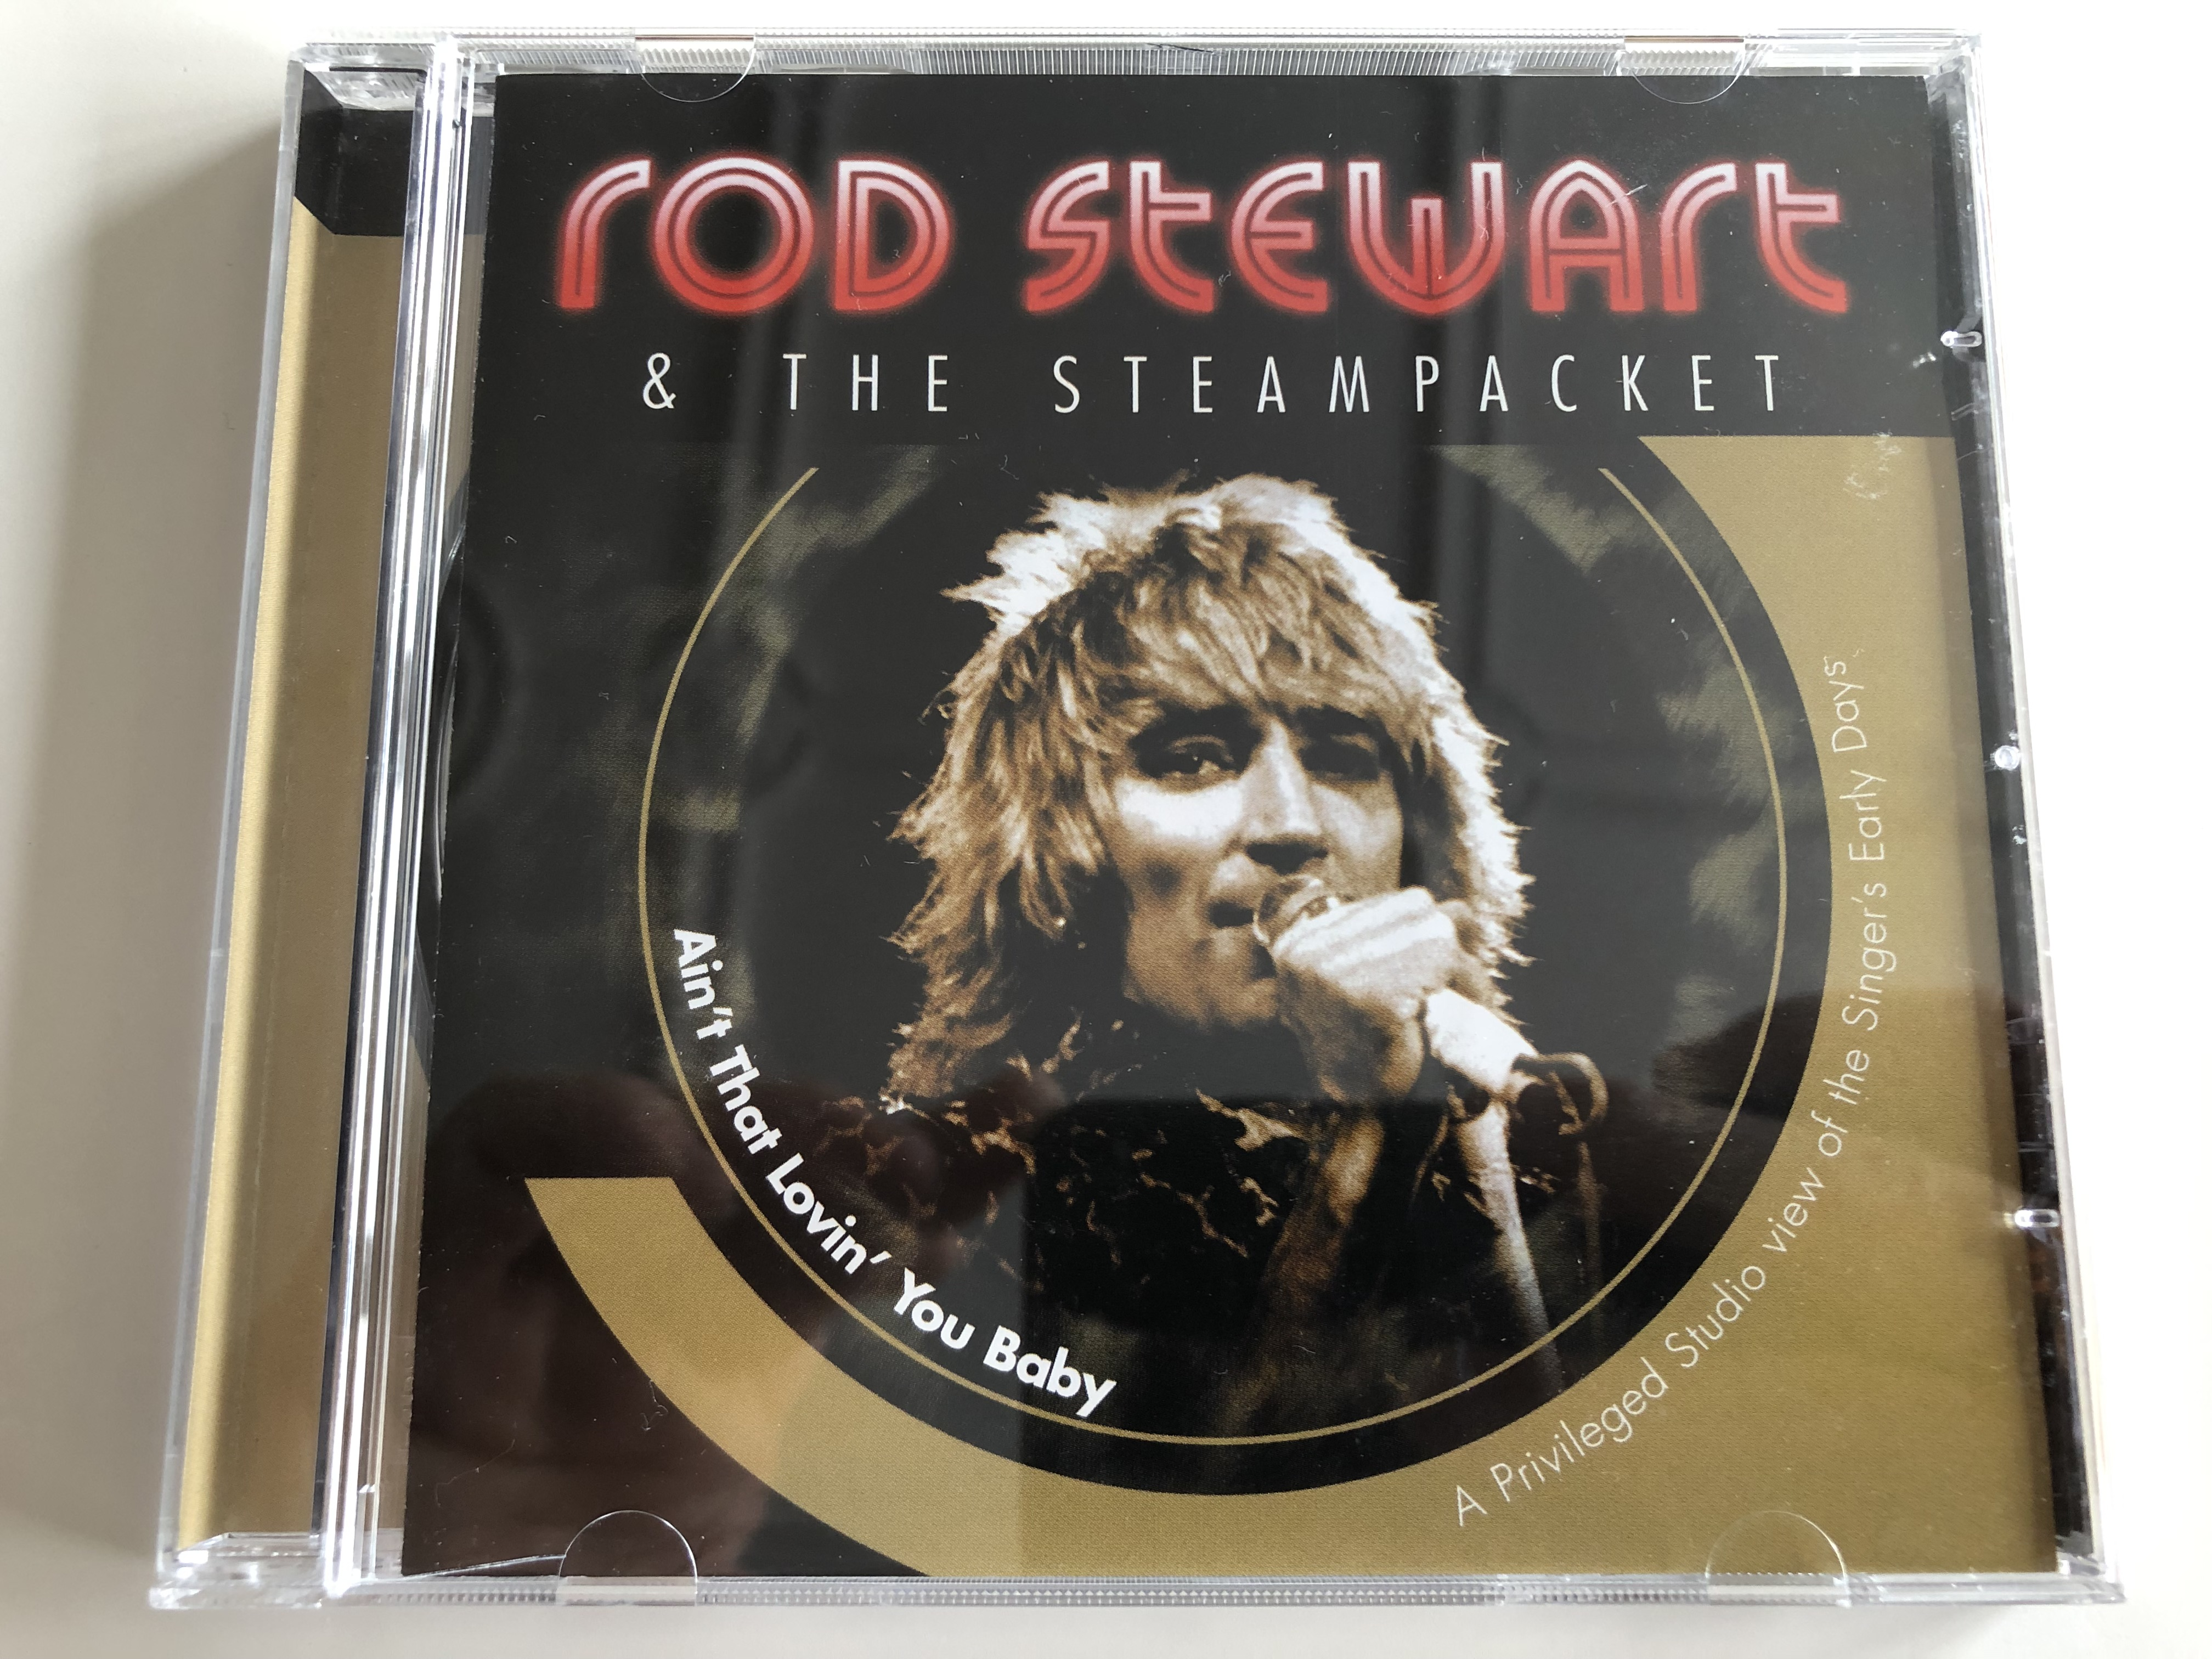 rod-stewart-the-steampacket-ain-t-that-lovin-you-baby-a-privileged-studio-view-of-the-singers-early-days-audio-cd-2004-platcd-1286-1-.jpg